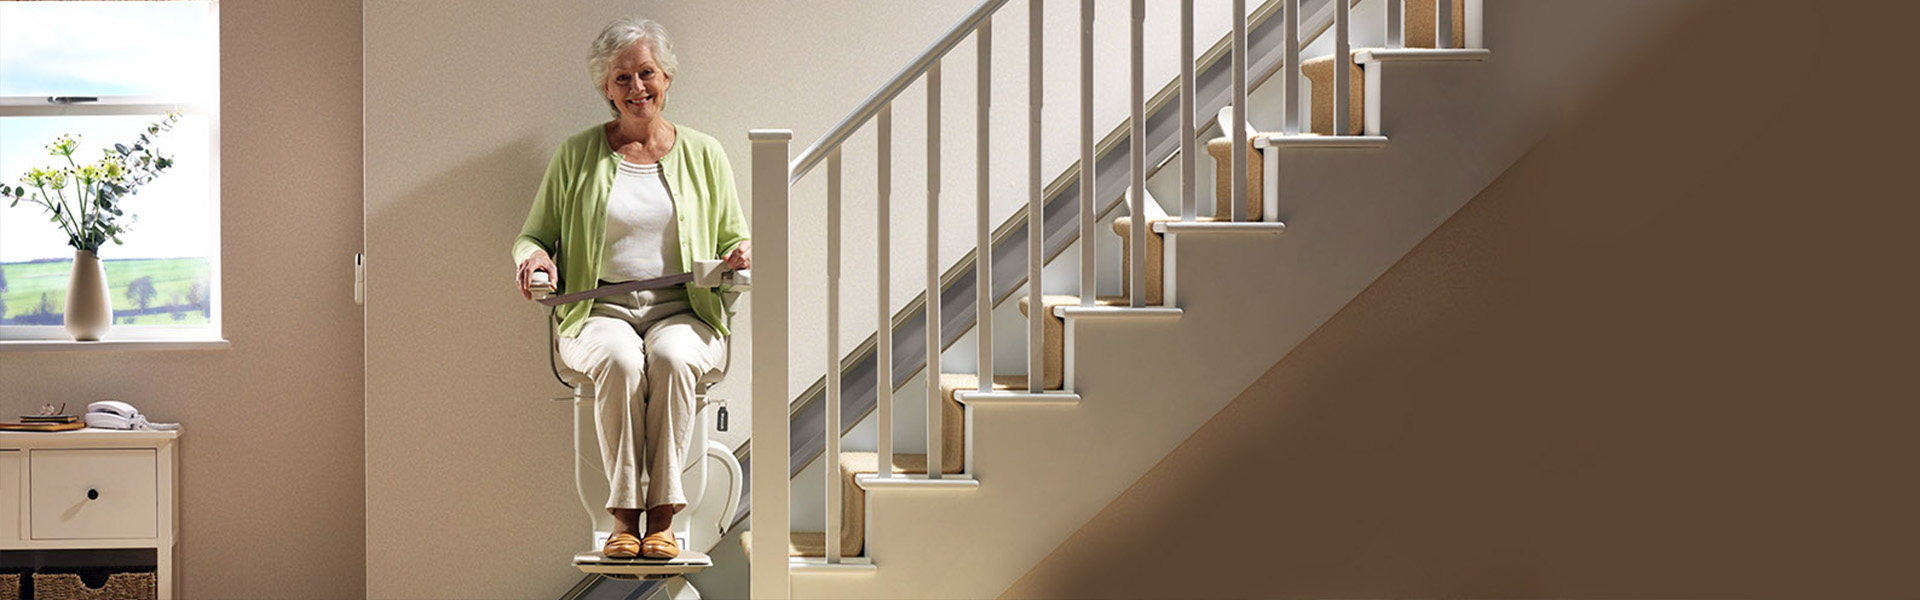 Stairlift Home Elevators Stair Climber Wheelchair Lifts